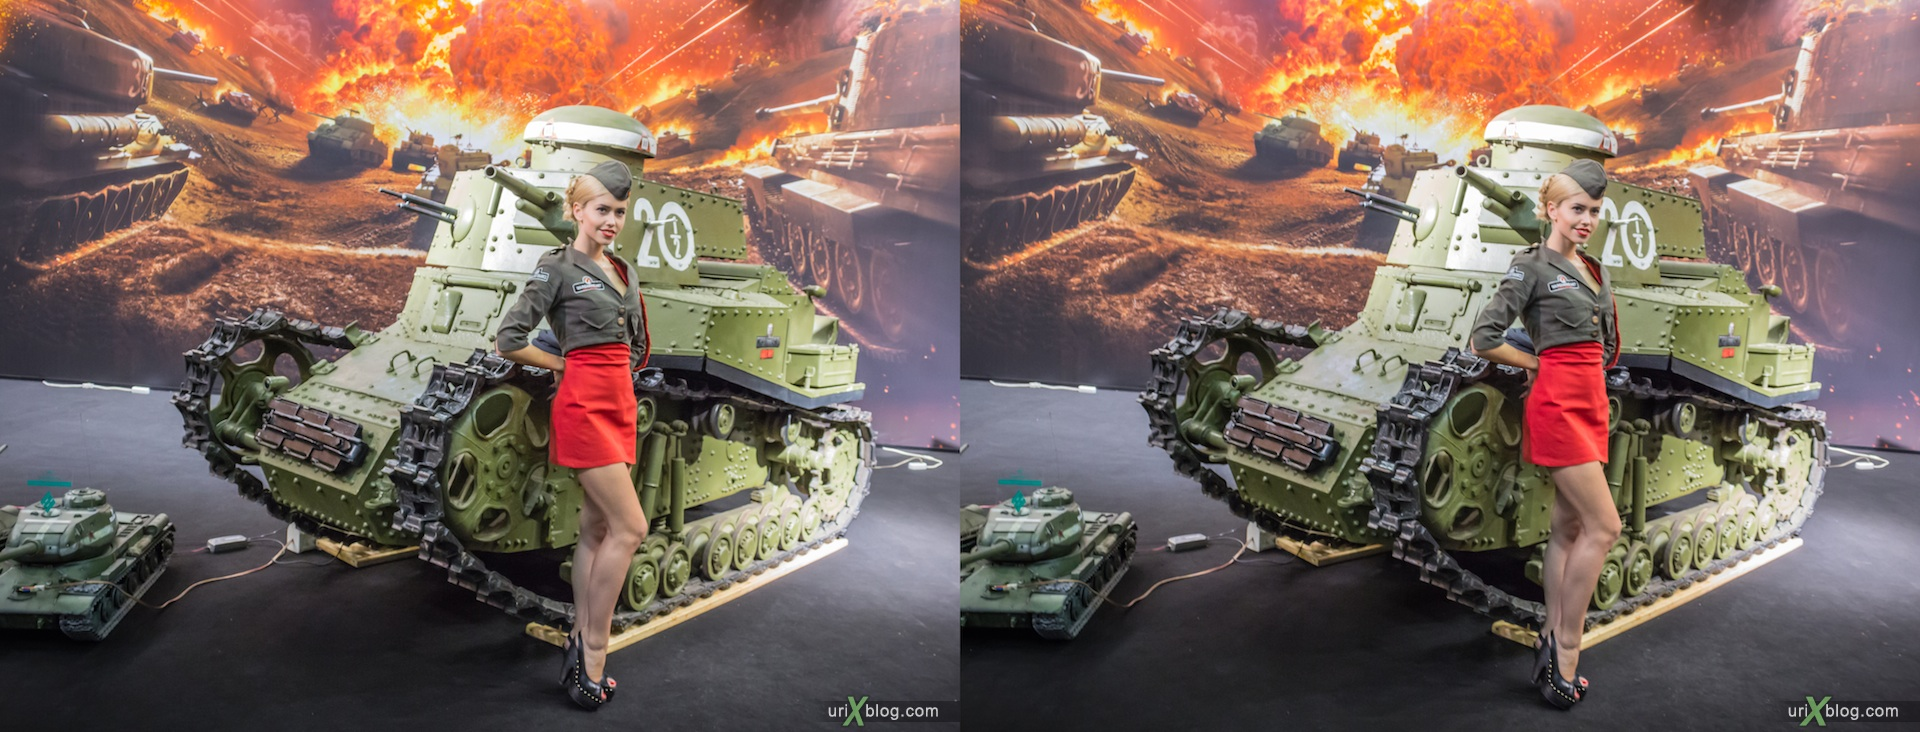 2012, Gameworld 2012 at Moscow, girls, models, Crocus Expo, 3D, stereo pair, cross-eyed, crossview, cross view stereo pair